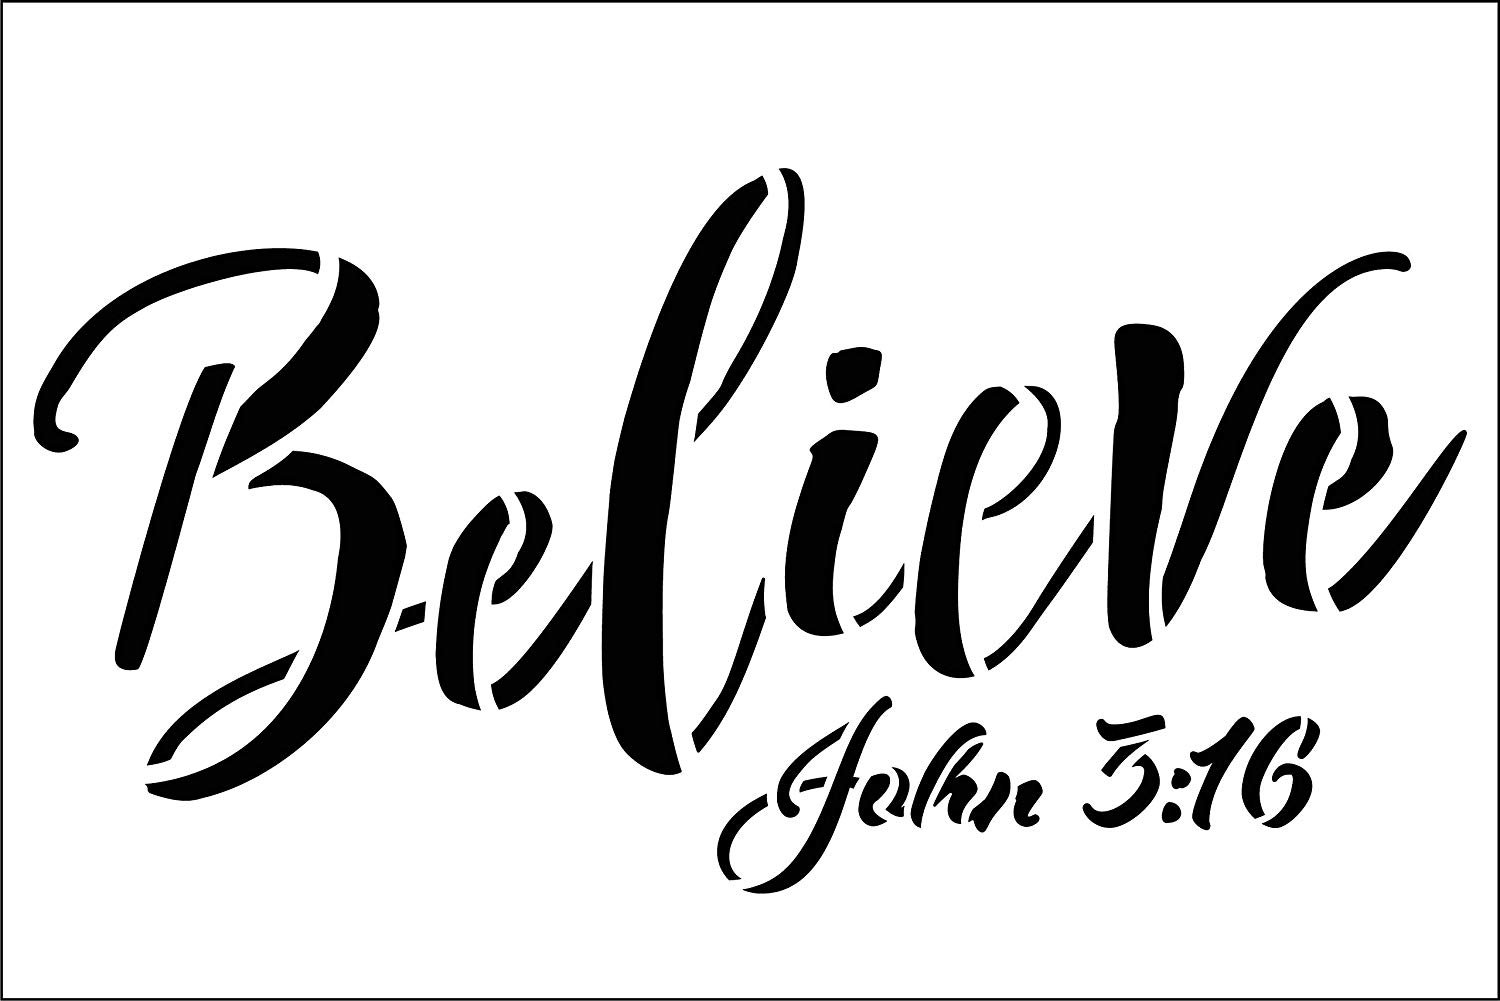 Believe John 3:16 Stencil by StudioR12 | Christian & Inspirational Wall Art | Rustic Farmhouse Faith Decor | Paint Wood Signs | Reusable Mylar Template | DIY Home Crafting | Select Size